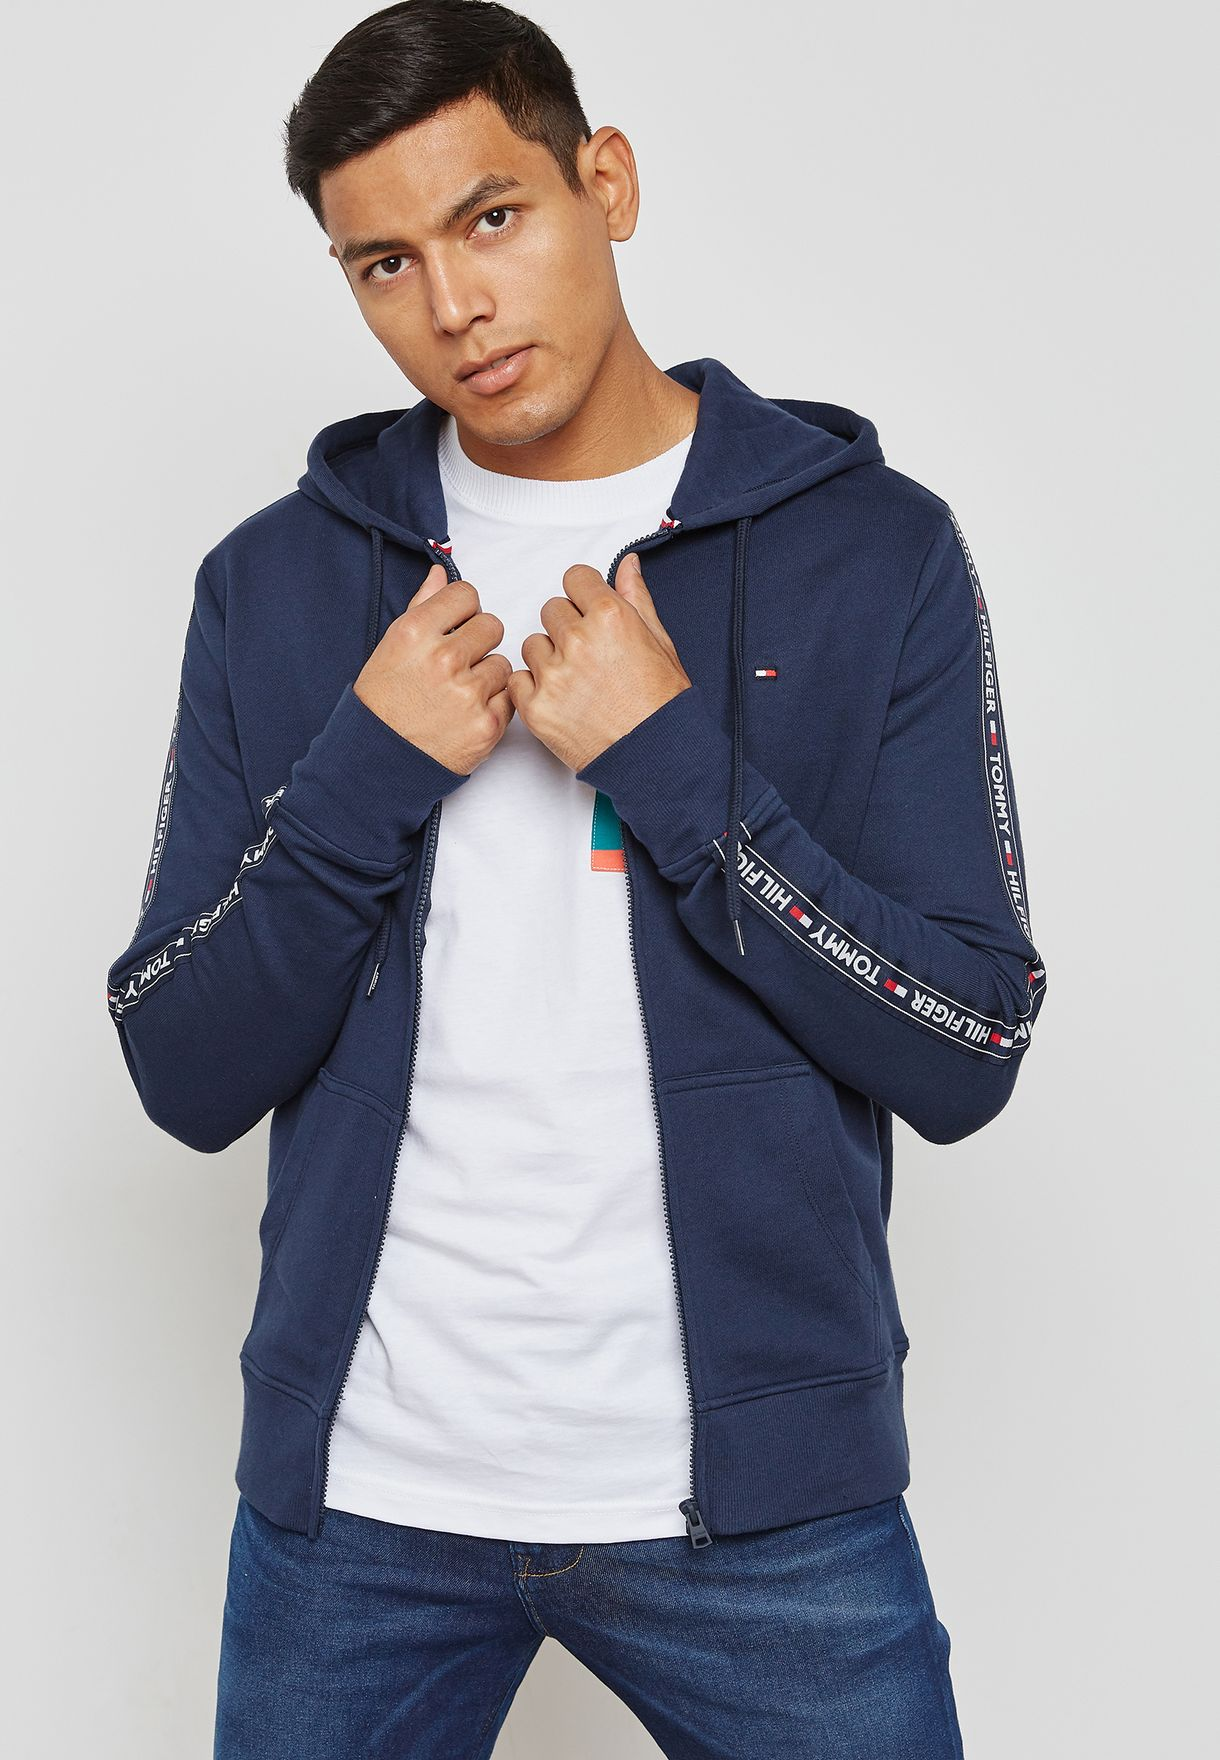 400b528563f5 Shop Tommy Hilfiger navy Zip Through taped Hoodie UM0UM00708 for Men ...